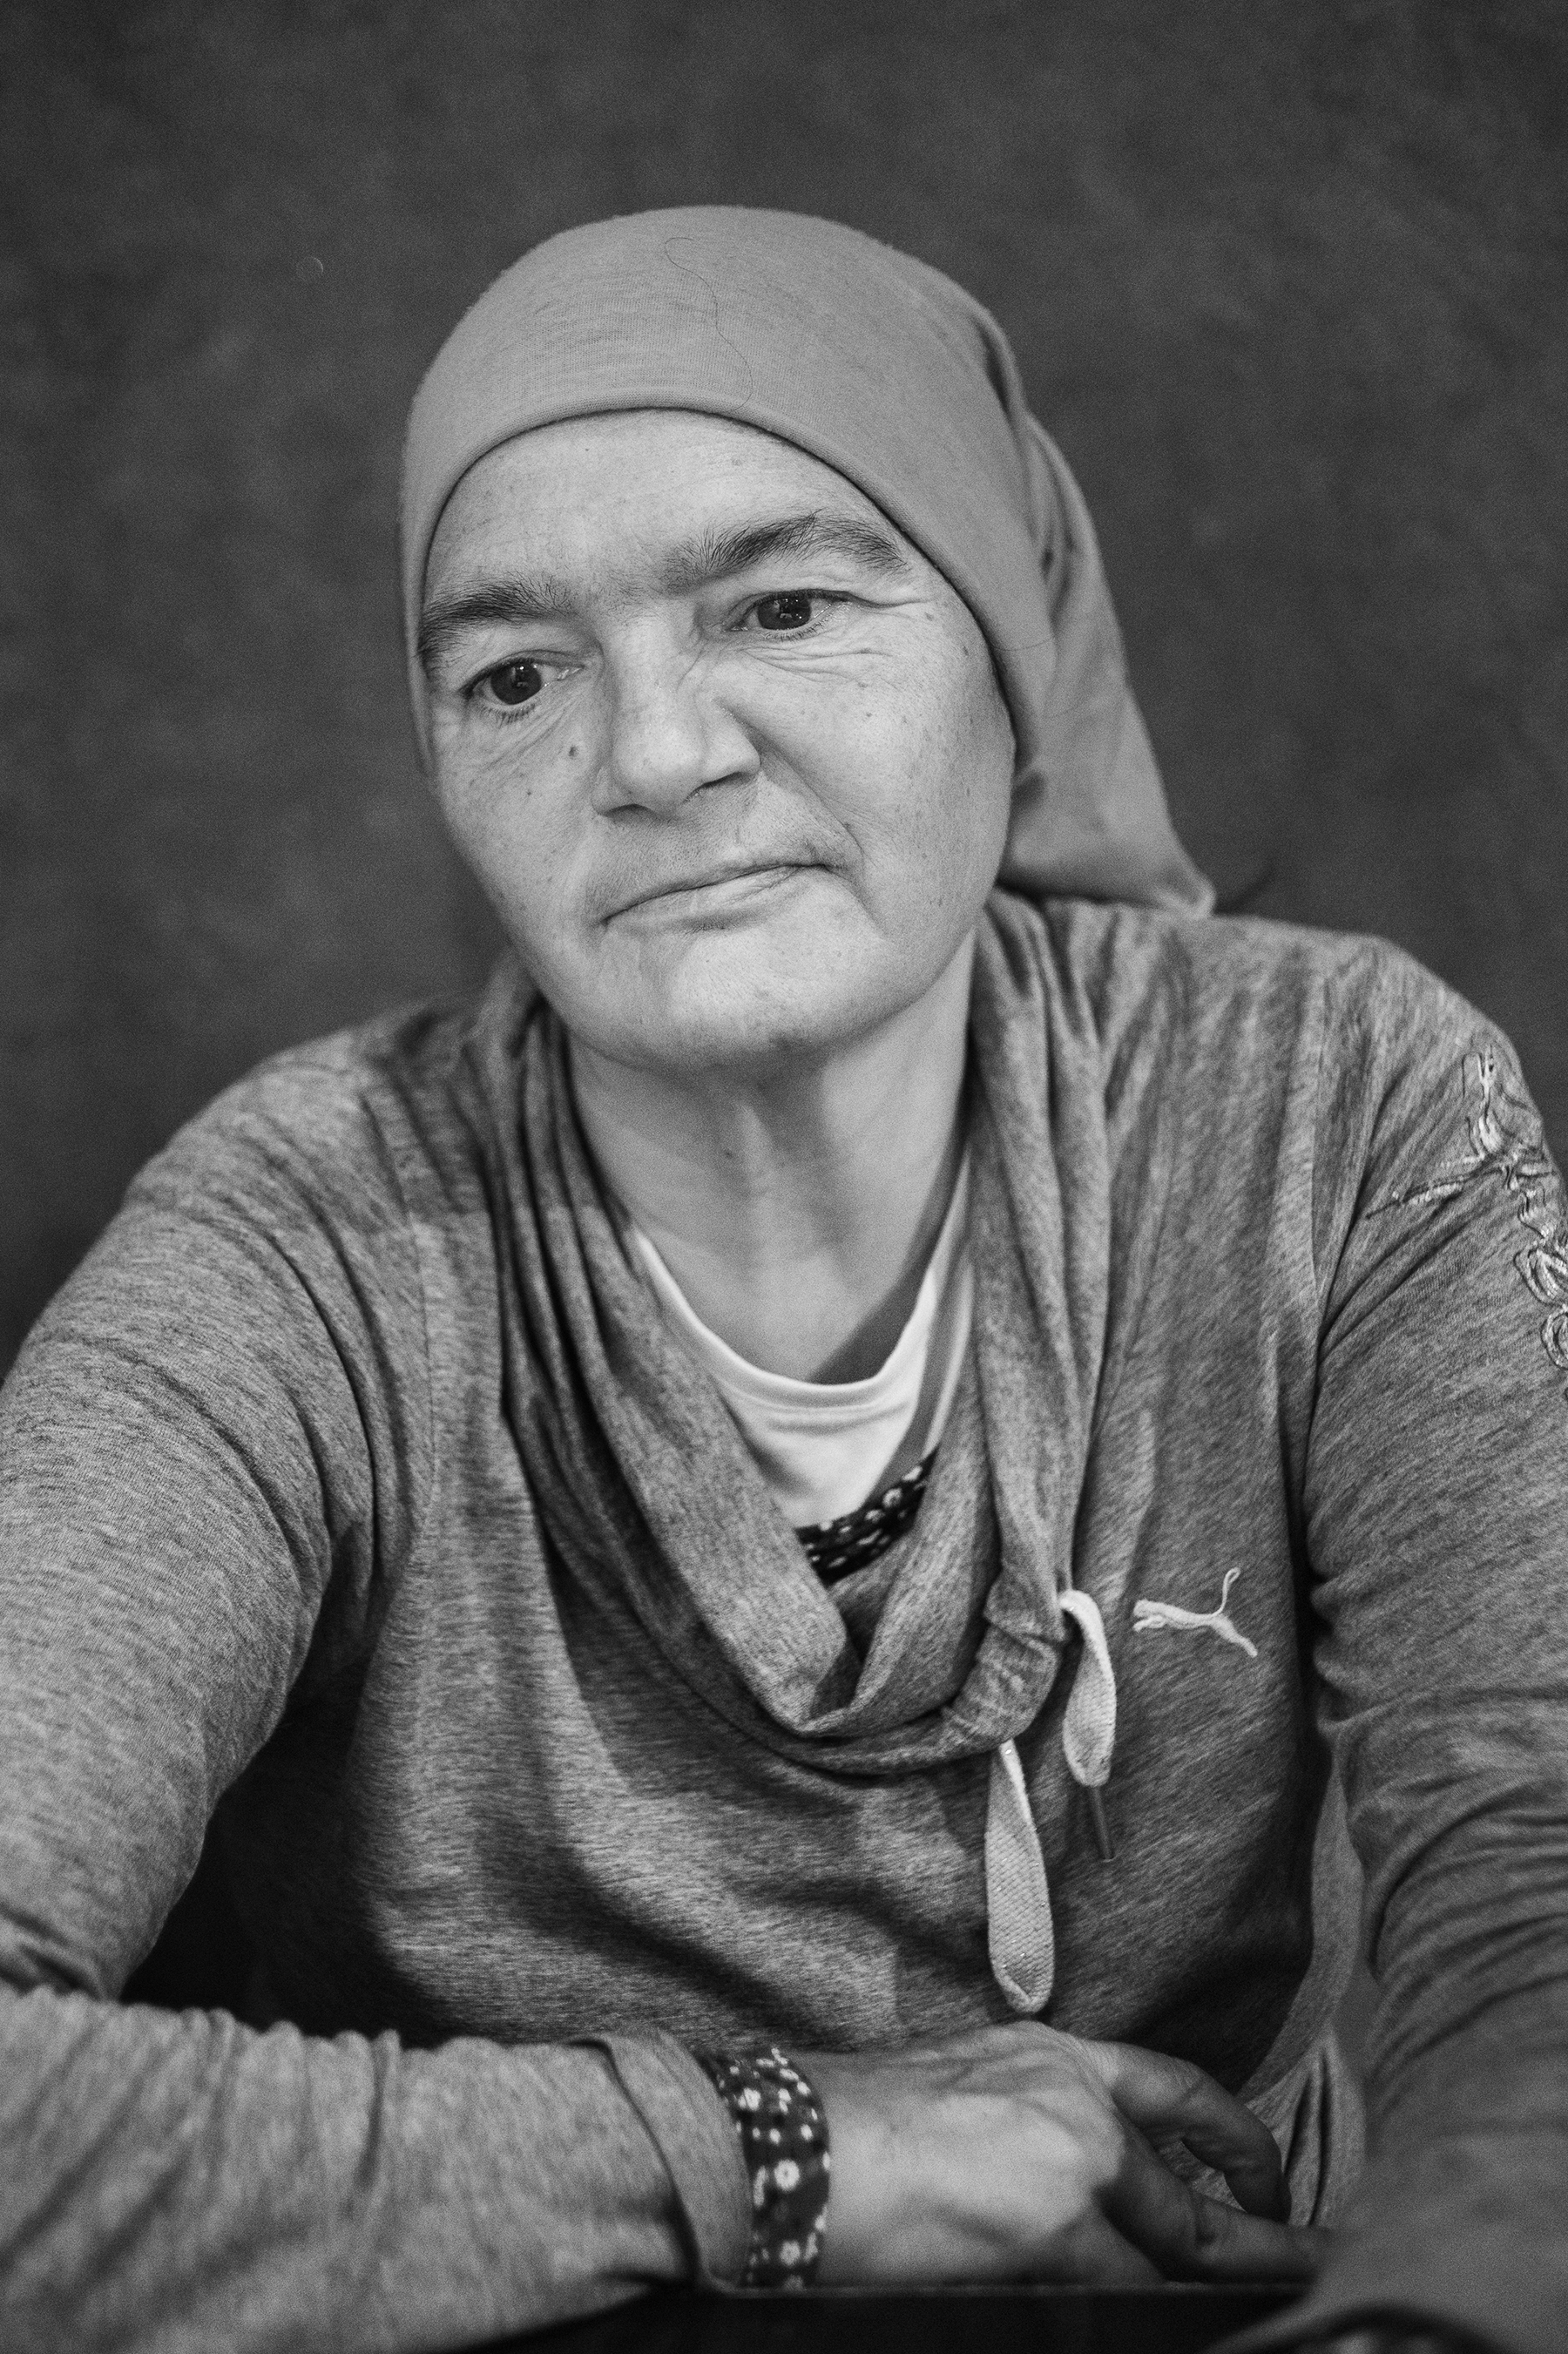 Tiziana Sfreddo (59) portrayed in the district of San Salvario in Turin, Italy; November 2018.Ms. Sfreddo lived 4 years in an occupied abandoned factory; at the beginning of her life on the streets, she stayed 3 months without a proper shower, before discovering the Public Baths.